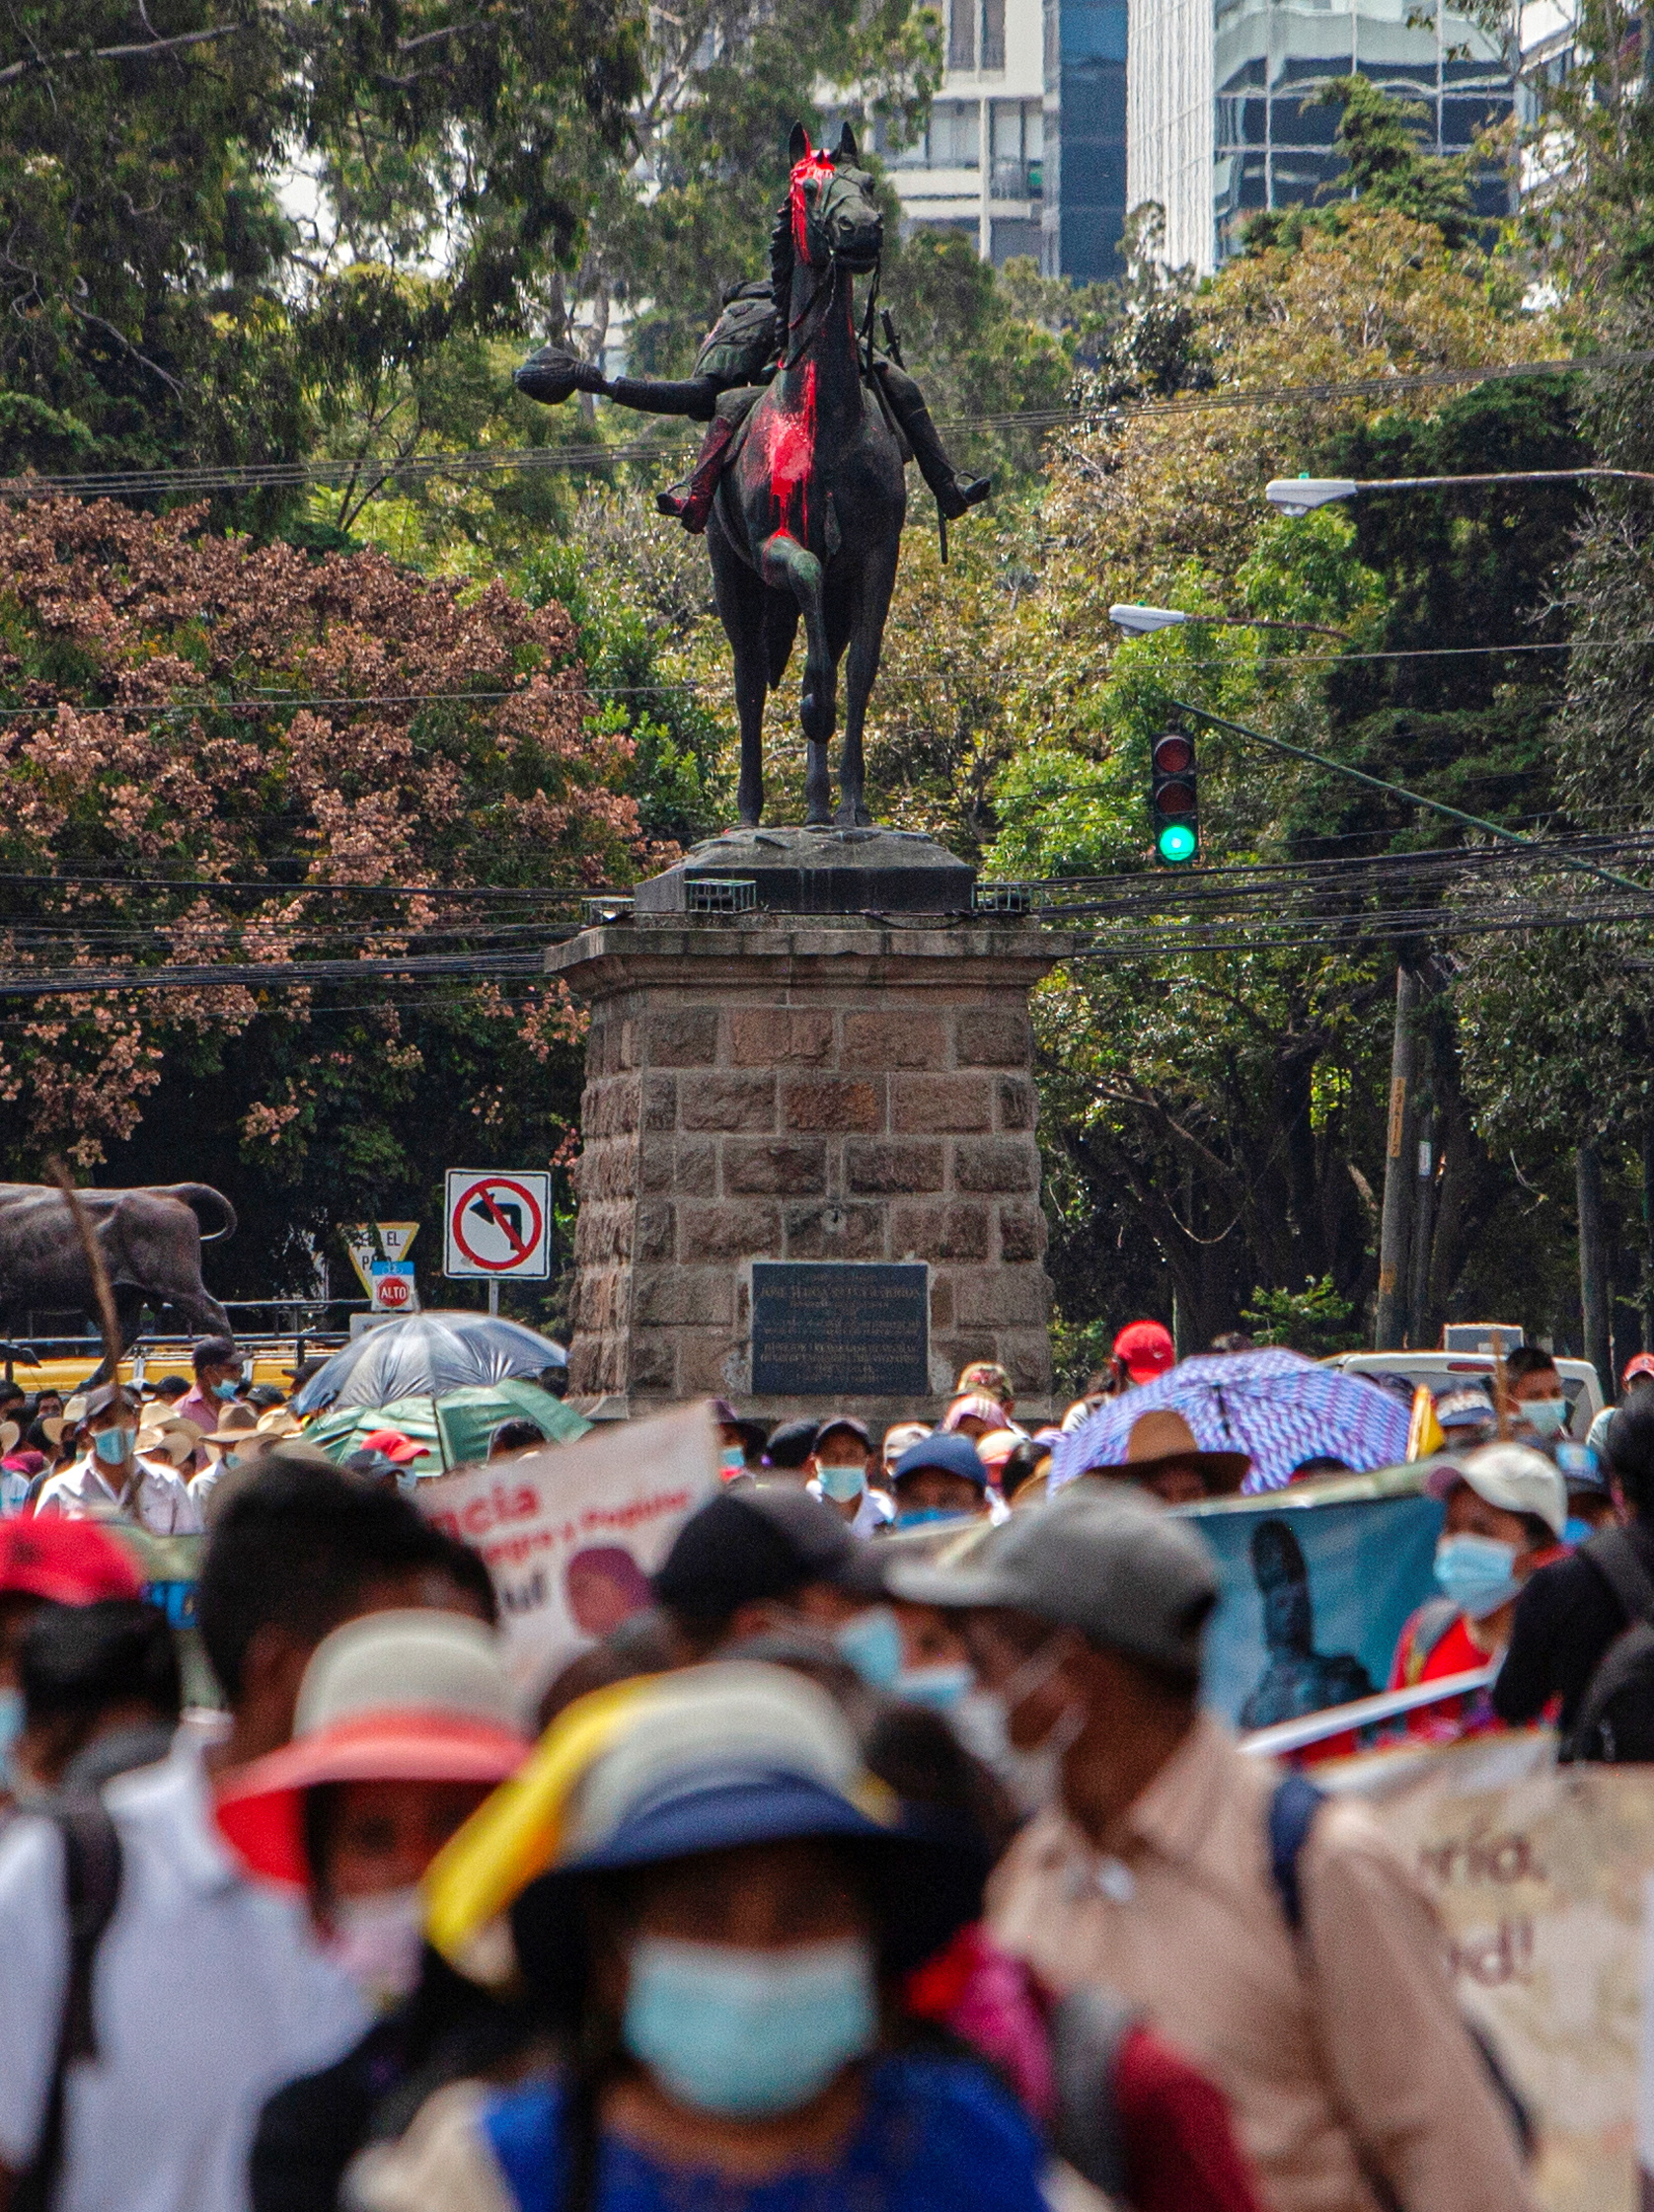 Demonstrators walk past the statue of former President Jose Maria Reina Barrios after people attempted to topple it during protests against the treatment of indigenous people by European conquerors, during Hispanic Heritage Day, in Guatemala City, Guatemala, October 12, 2021. REUTERS/Stringer